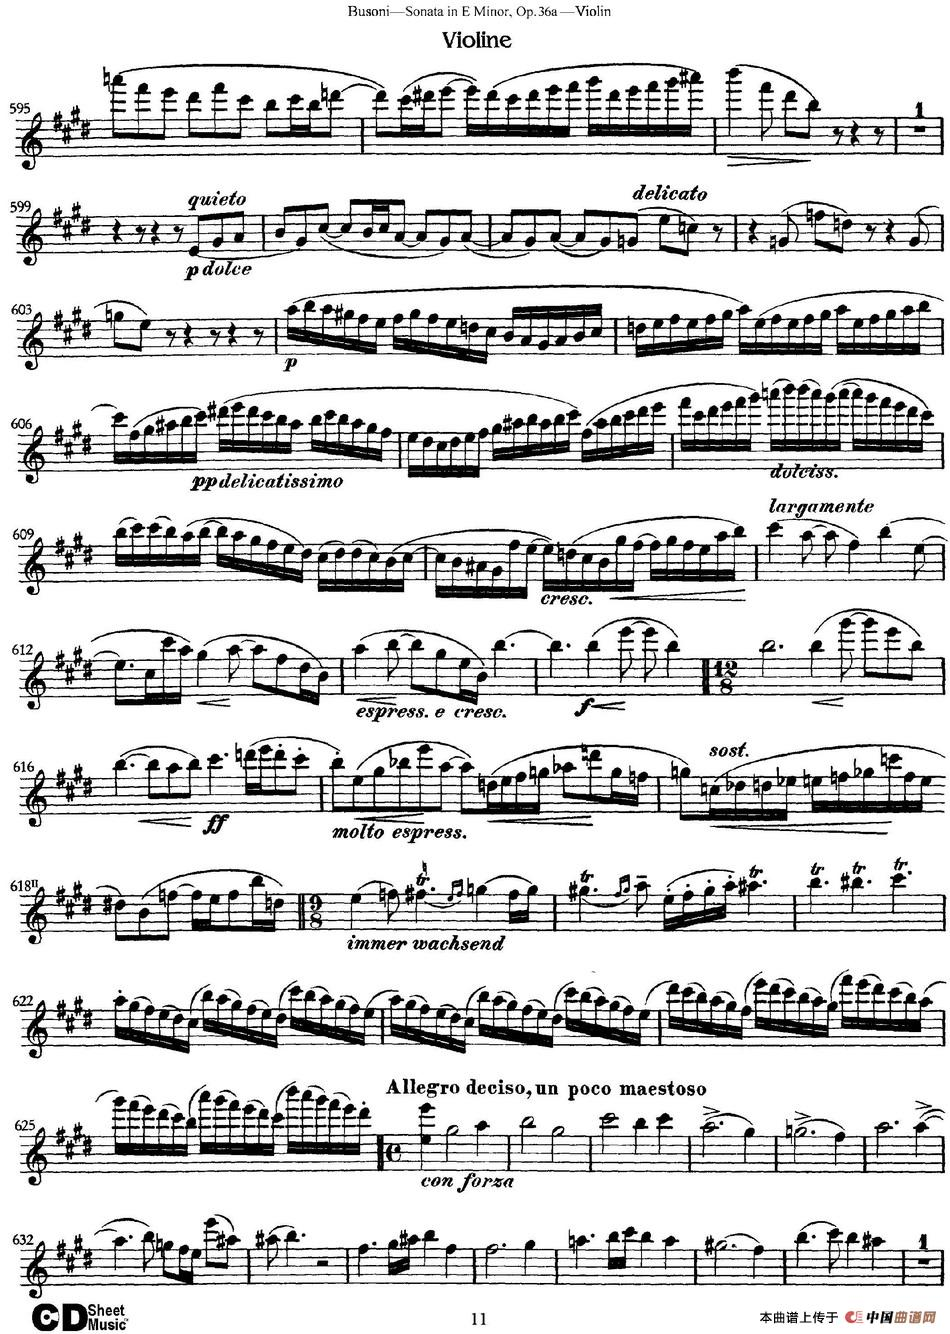 Violin Sonata No.2 in E Minor Op.36(1)_原文件名:Violin Sonata No.2 in E Minor, Op.36_页面_11.jpg